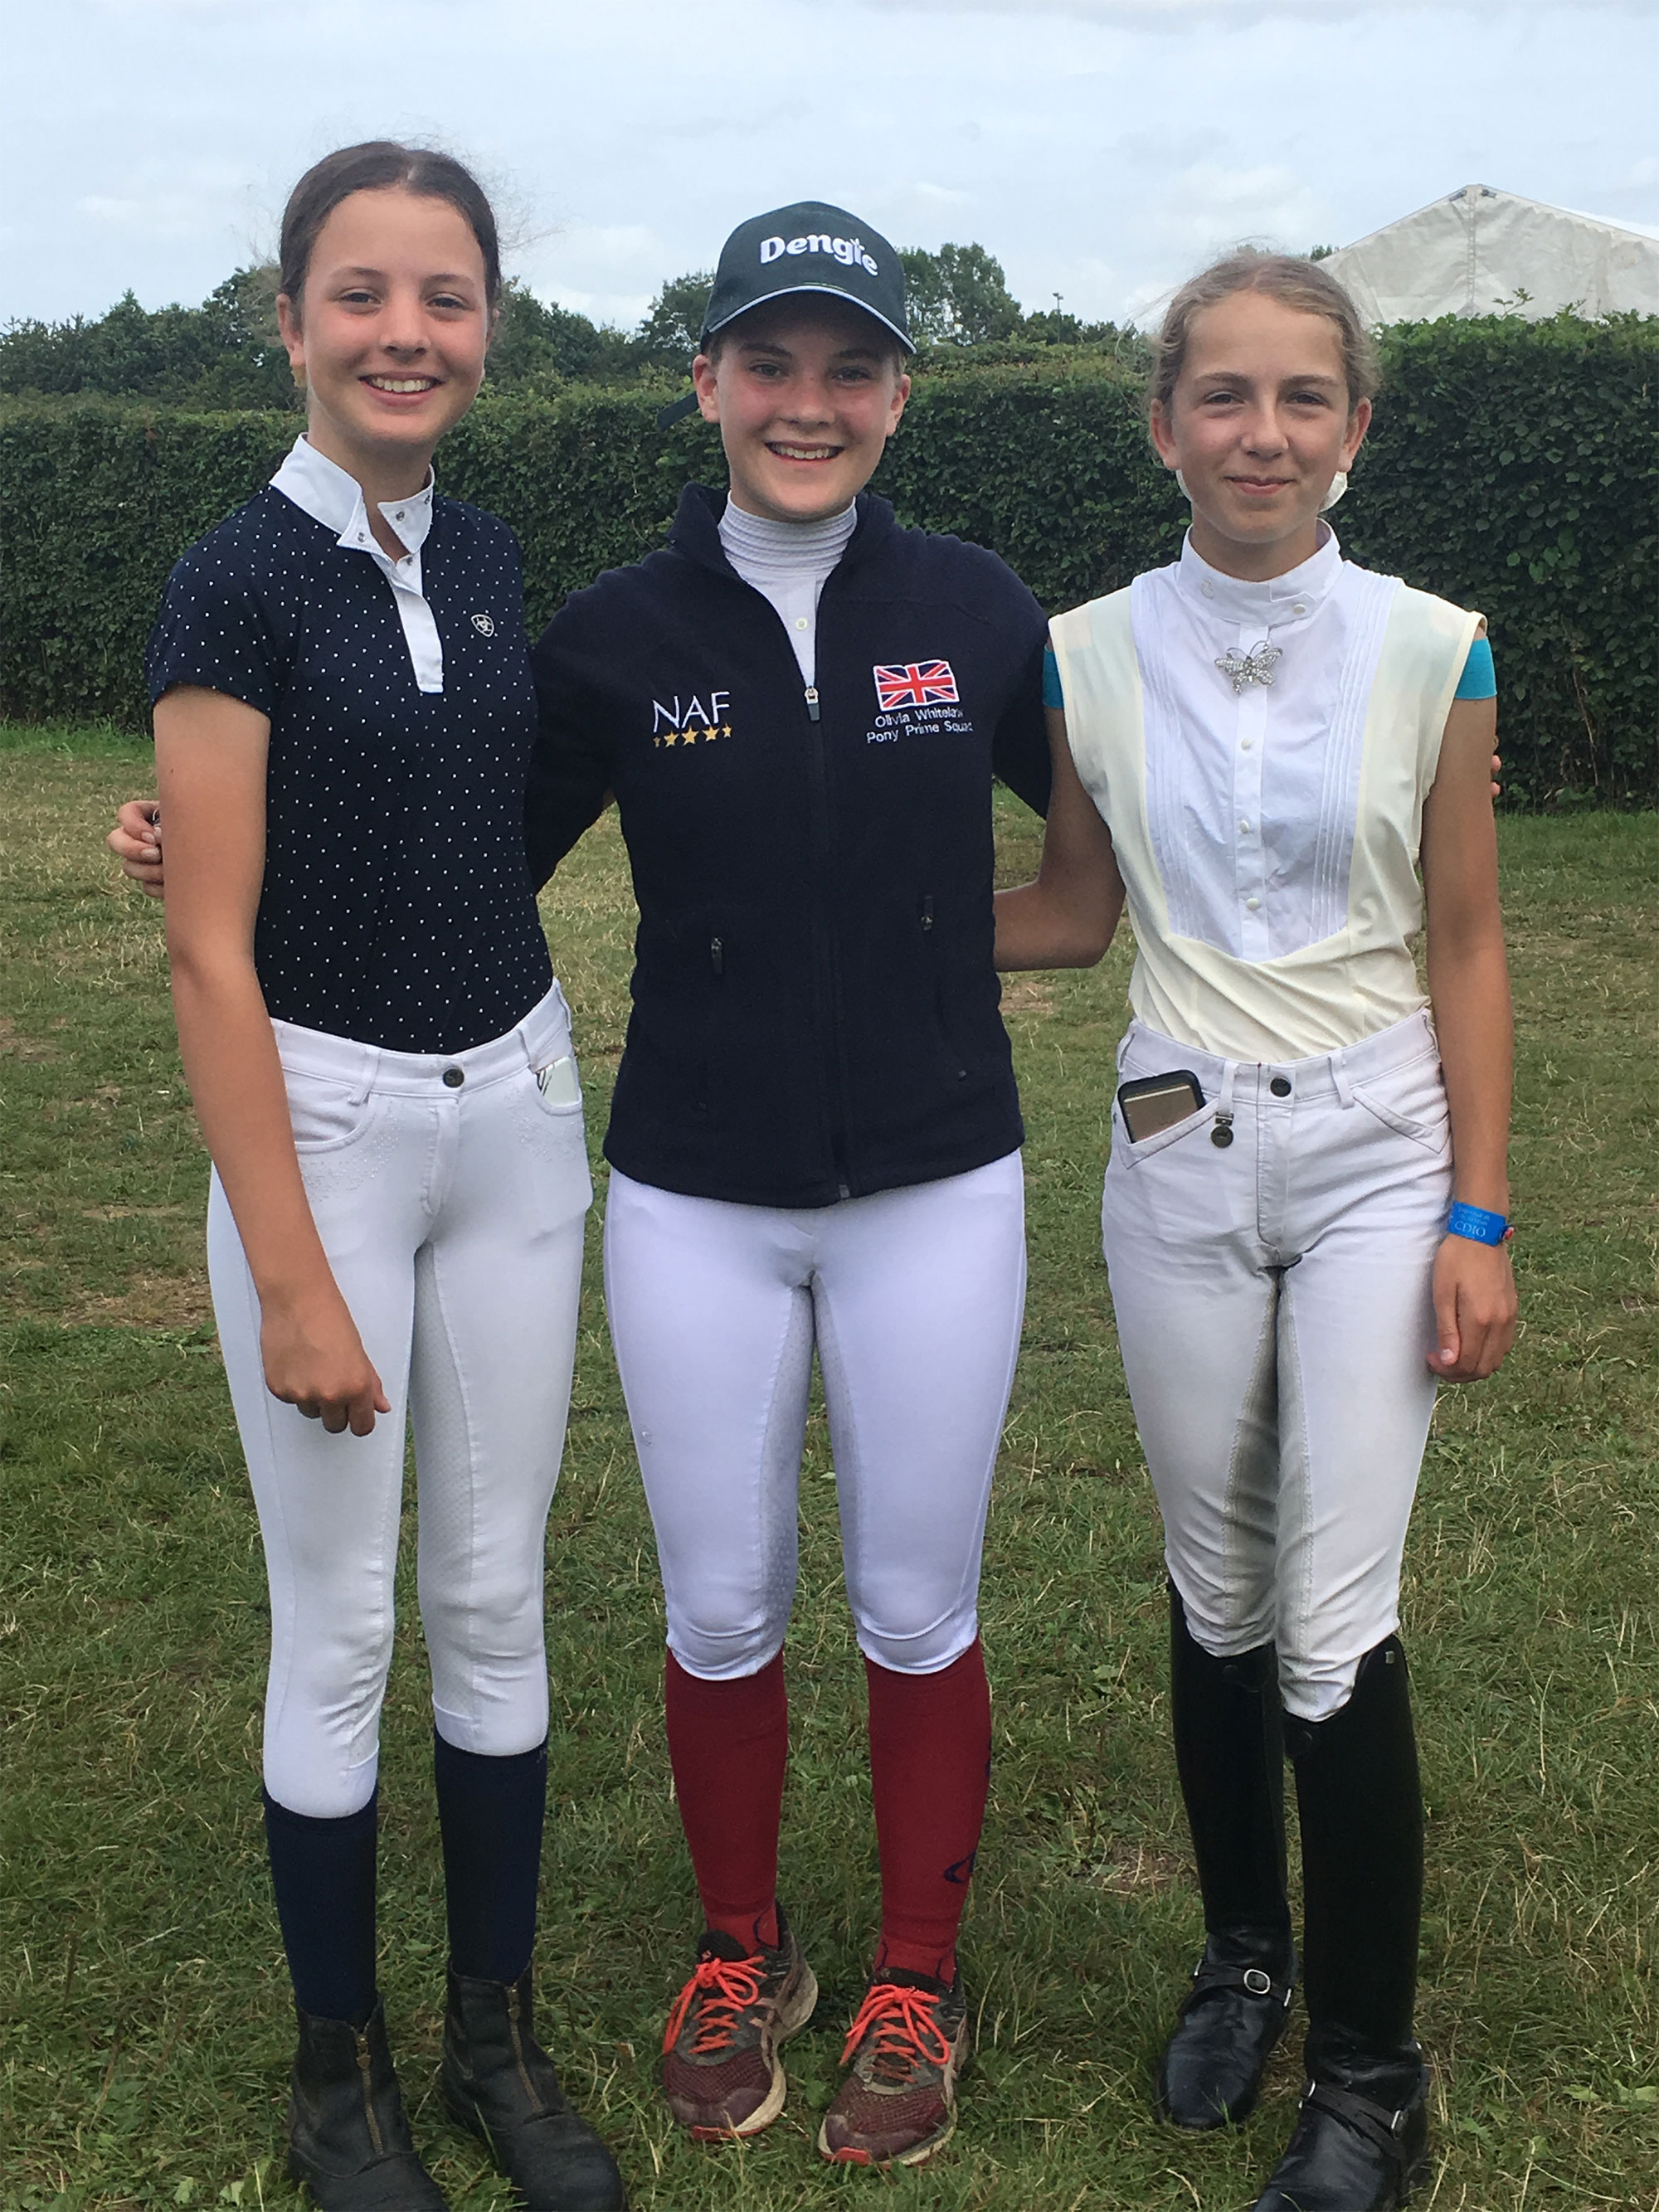 Olivia Whitelaw and Friends at Hickstead